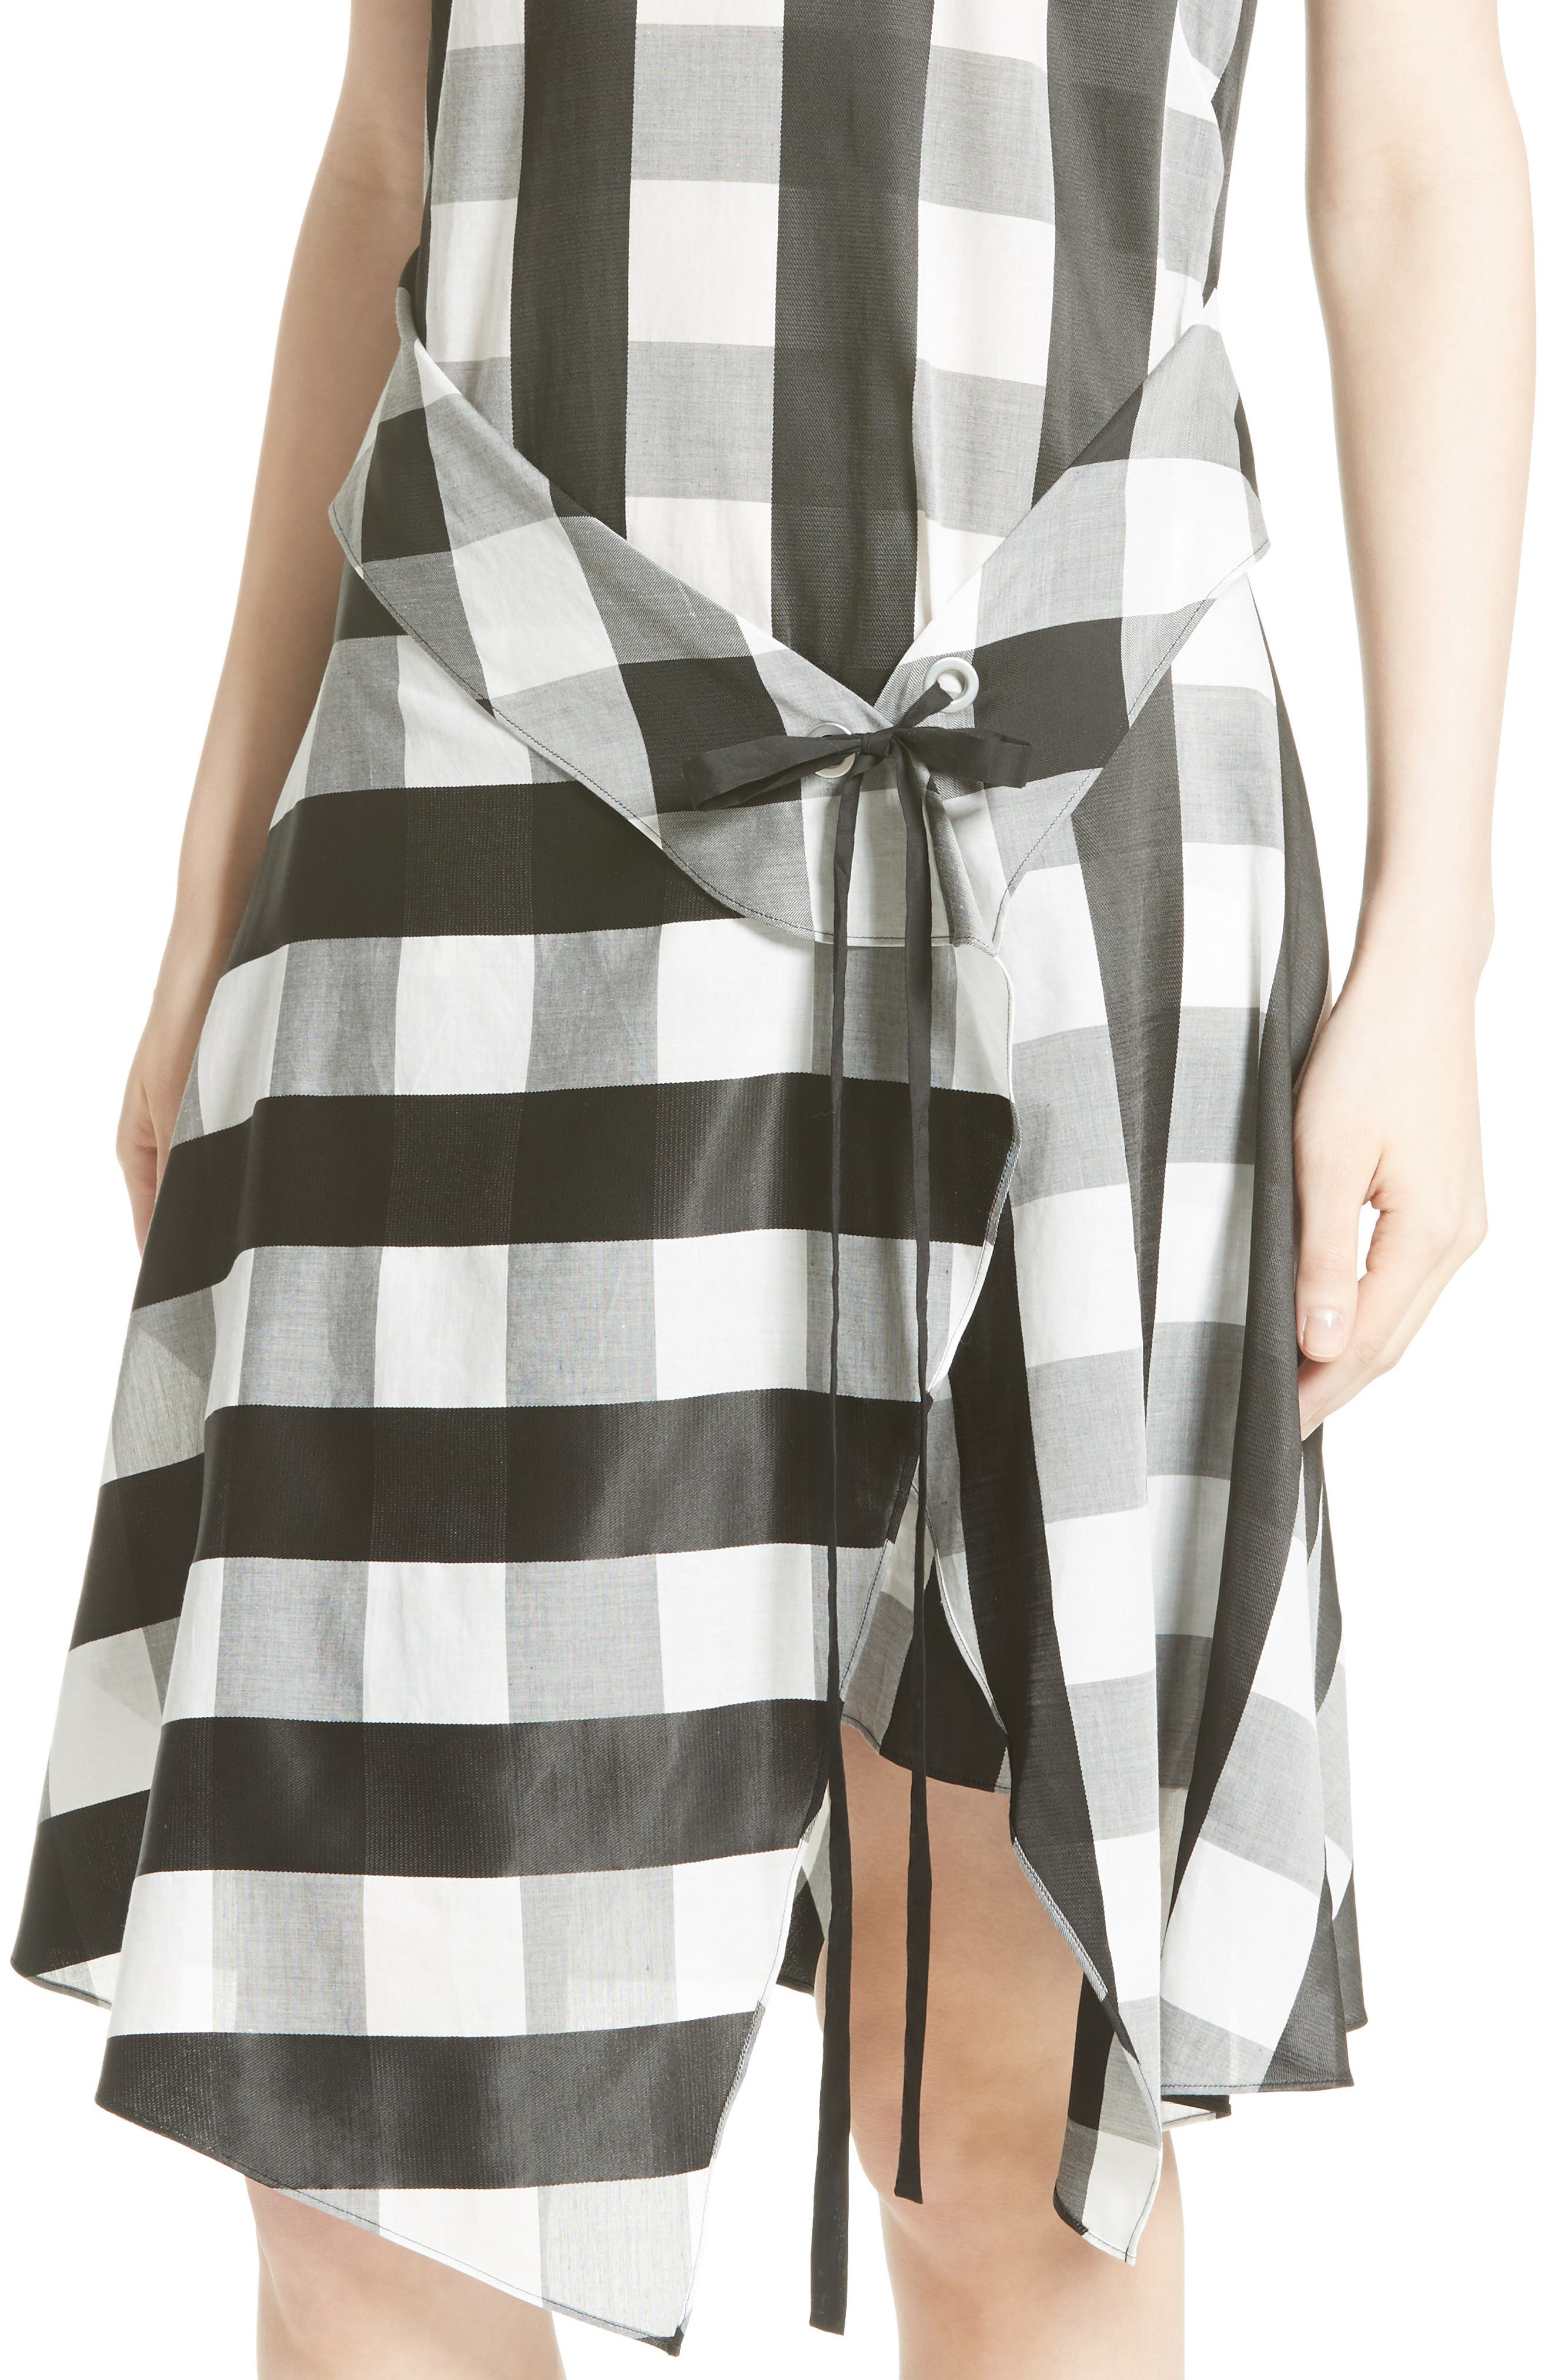 Brighton Asymmetrical Dress,                             Alternate thumbnail 4, color,                             Black/ White